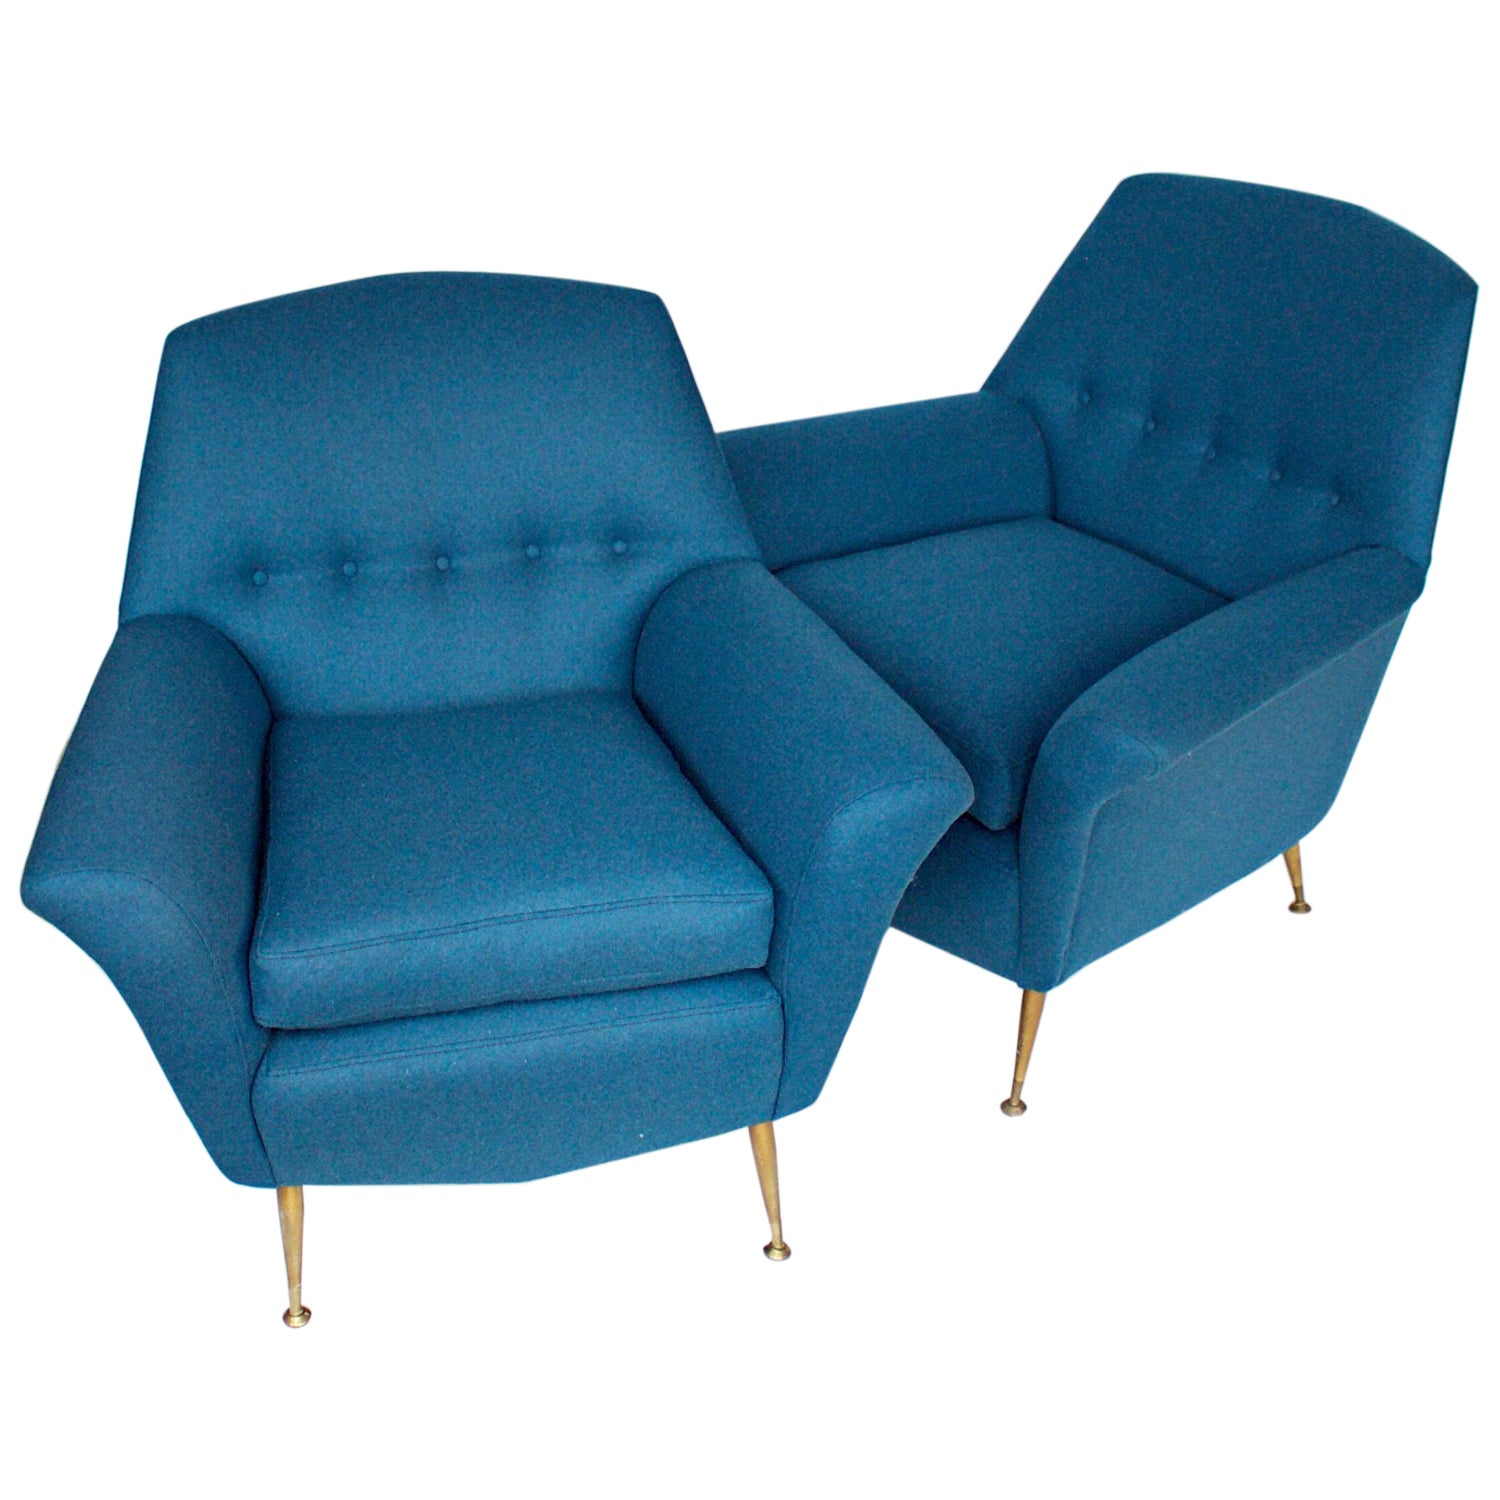 Pair of Vintage 1950s Italian Lounge Chairs Upholstered in Marine Wool